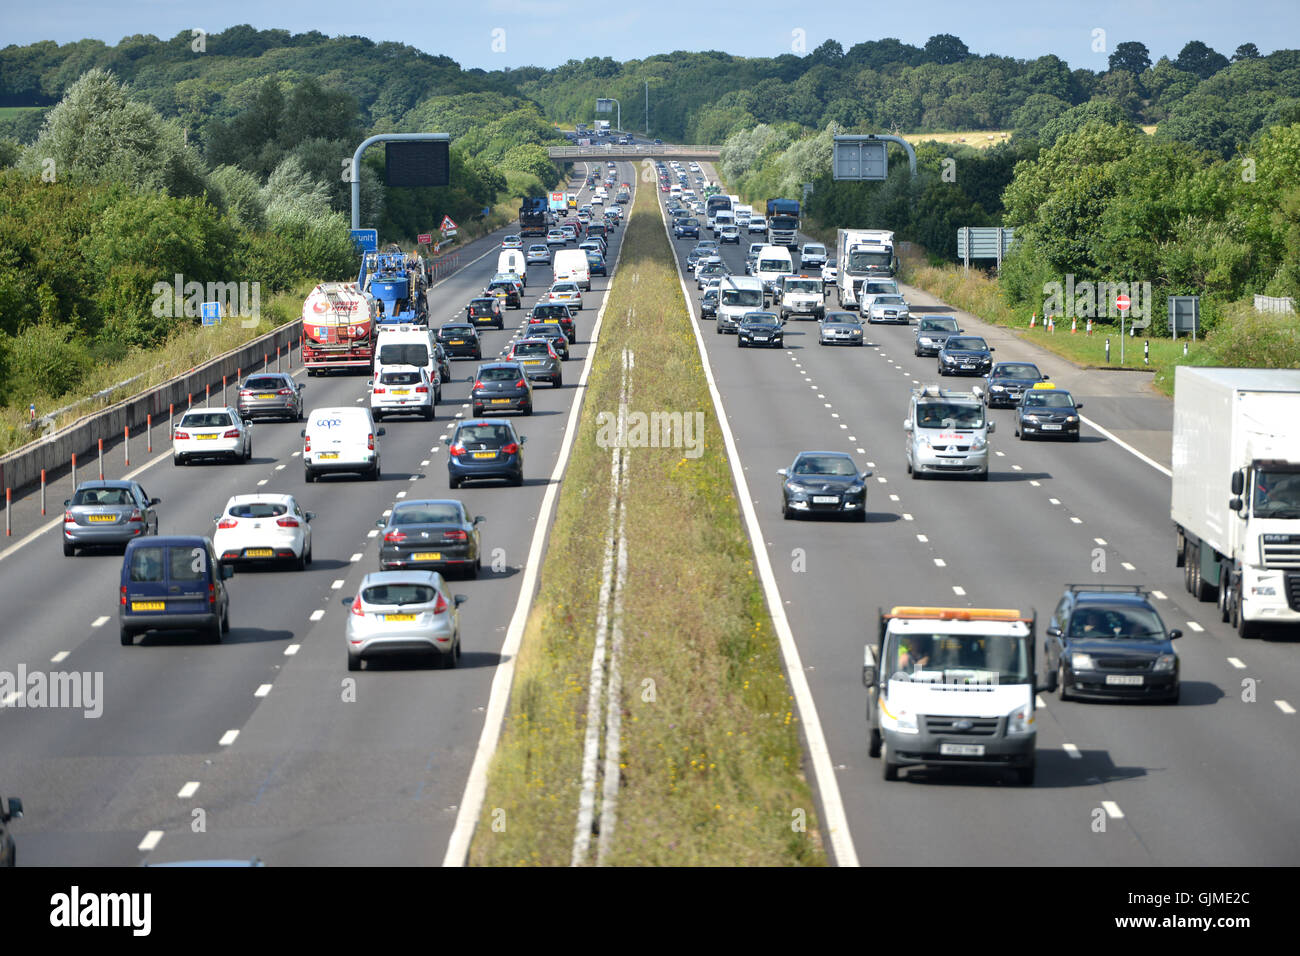 Traffic on the A23 near Gatwick airport - Stock Image